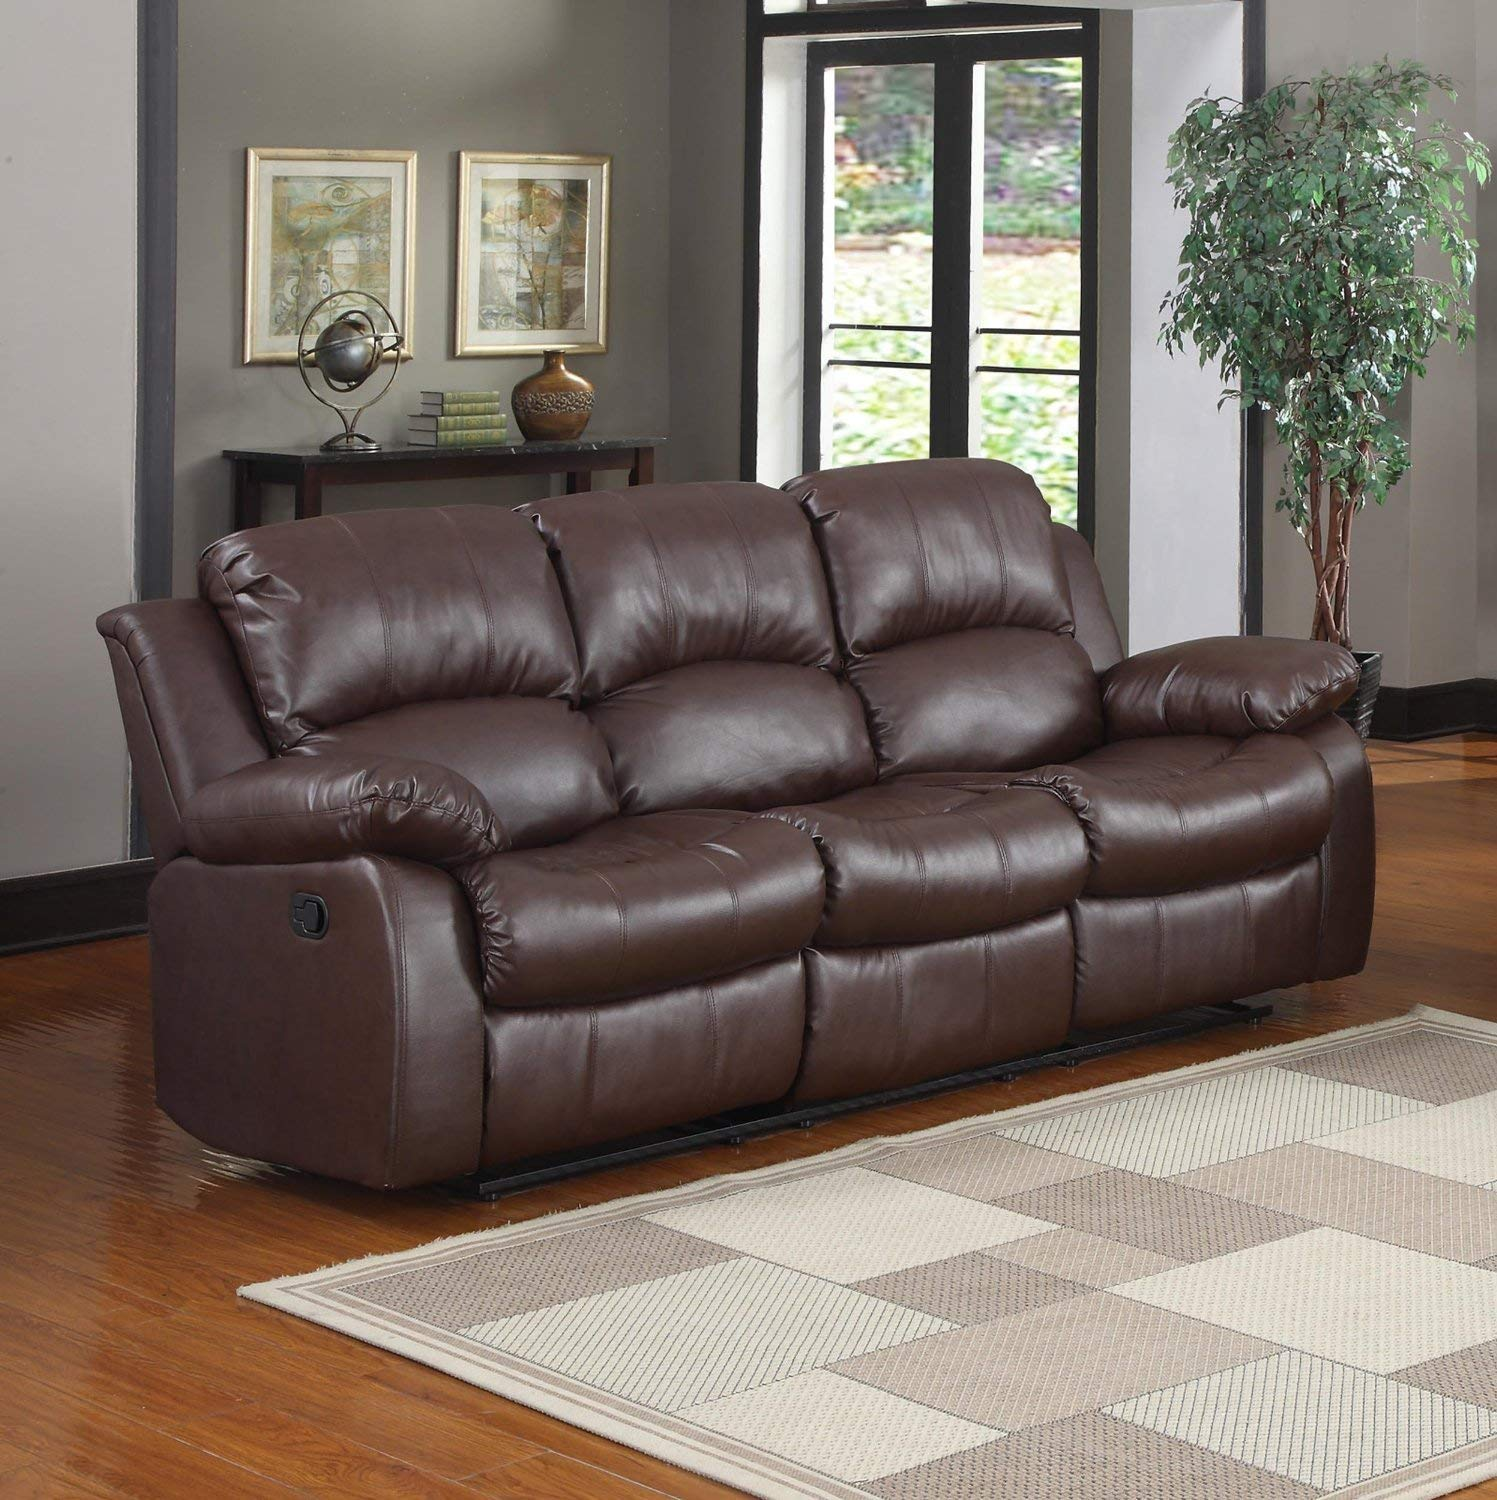 leather reclining sofa amazon.com: bonded leather double recliner sofa living room reclining couch  (brown): kitchen CGNKTIV